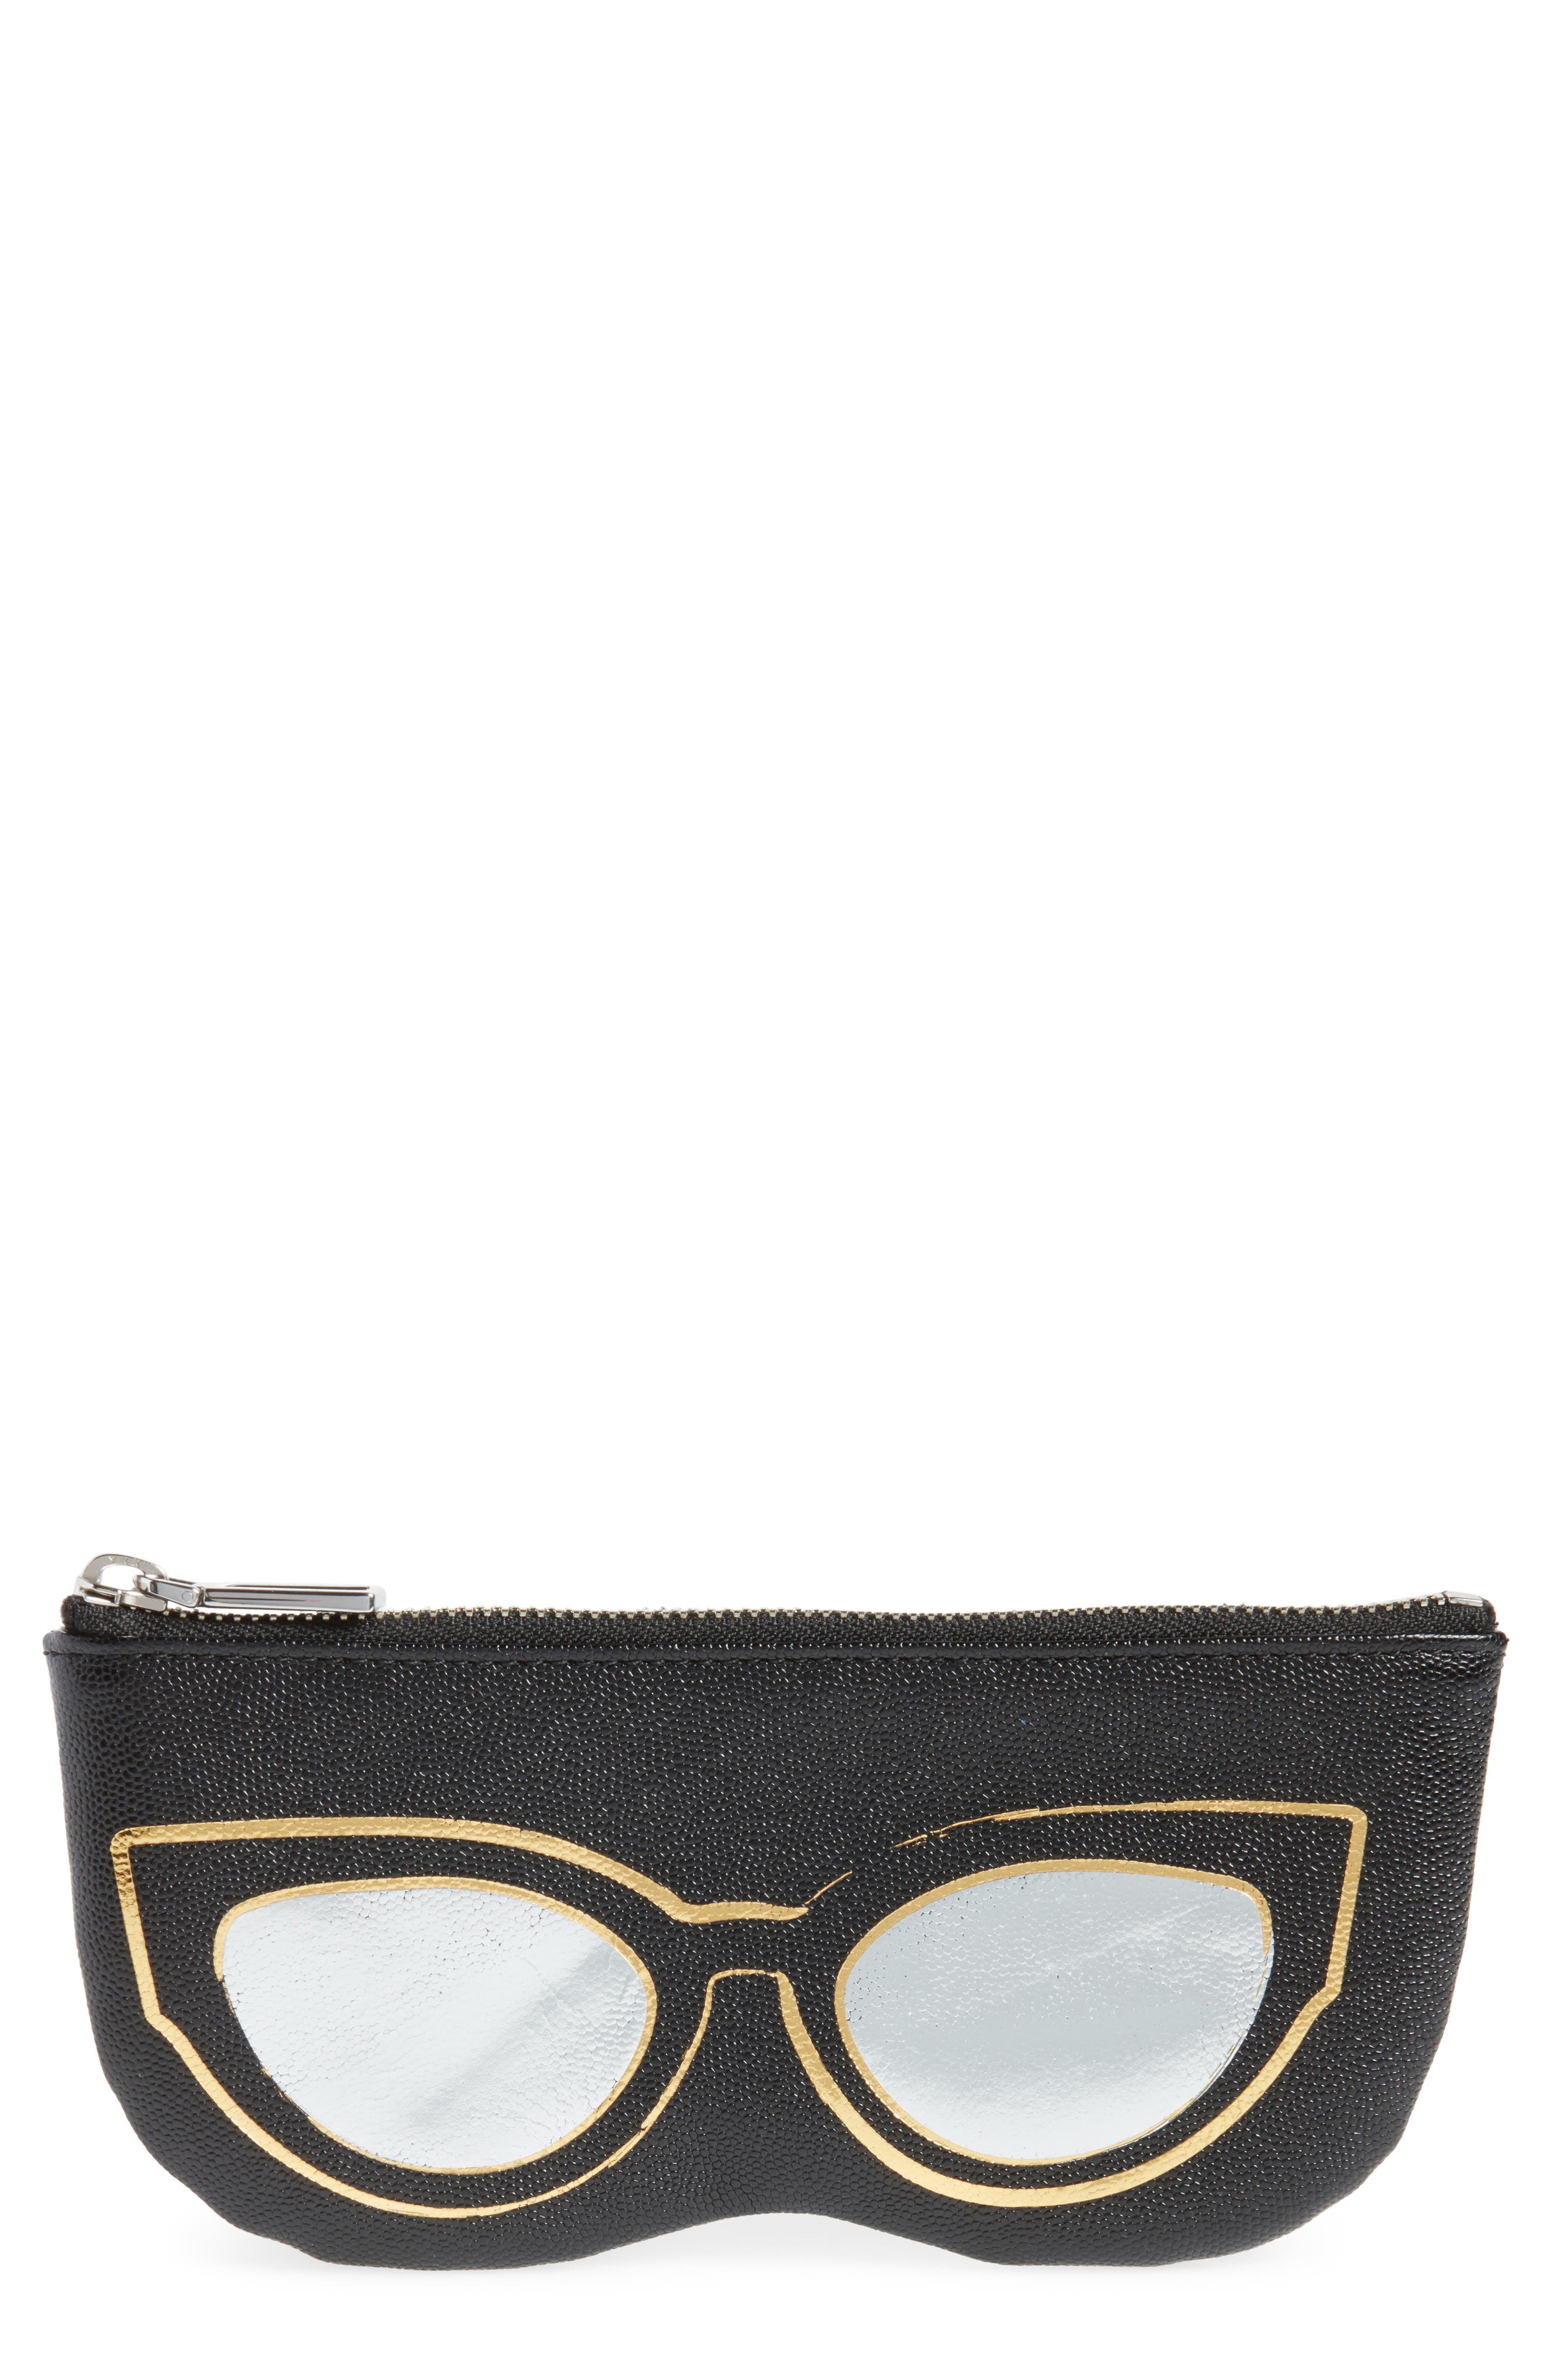 Cat Eye Sunnies Print Leather Pouch,                             Main thumbnail 1, color,                             Black